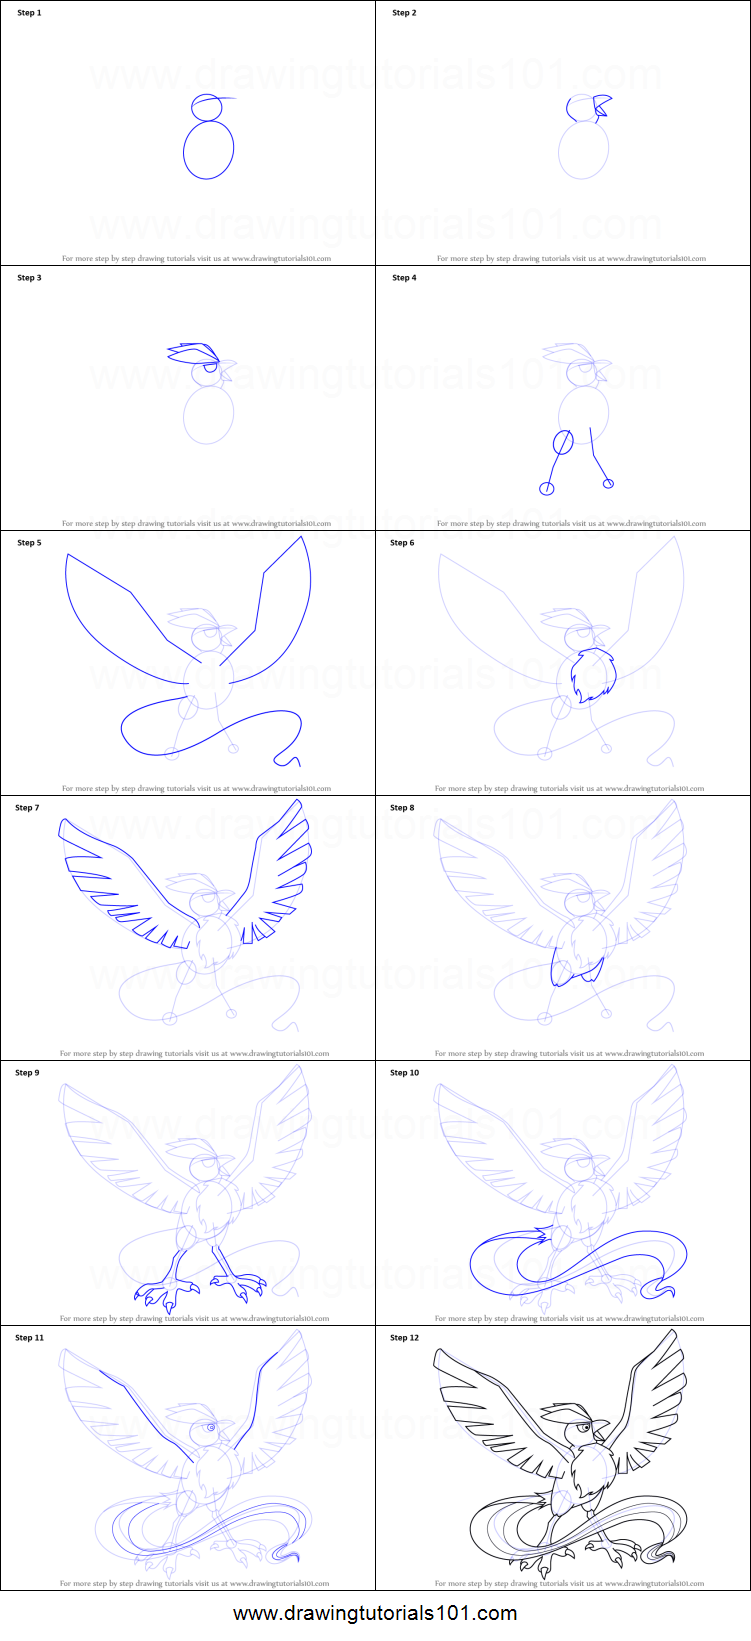 How To Draw Articuno From Pokemon Printable Drawing Sheet By